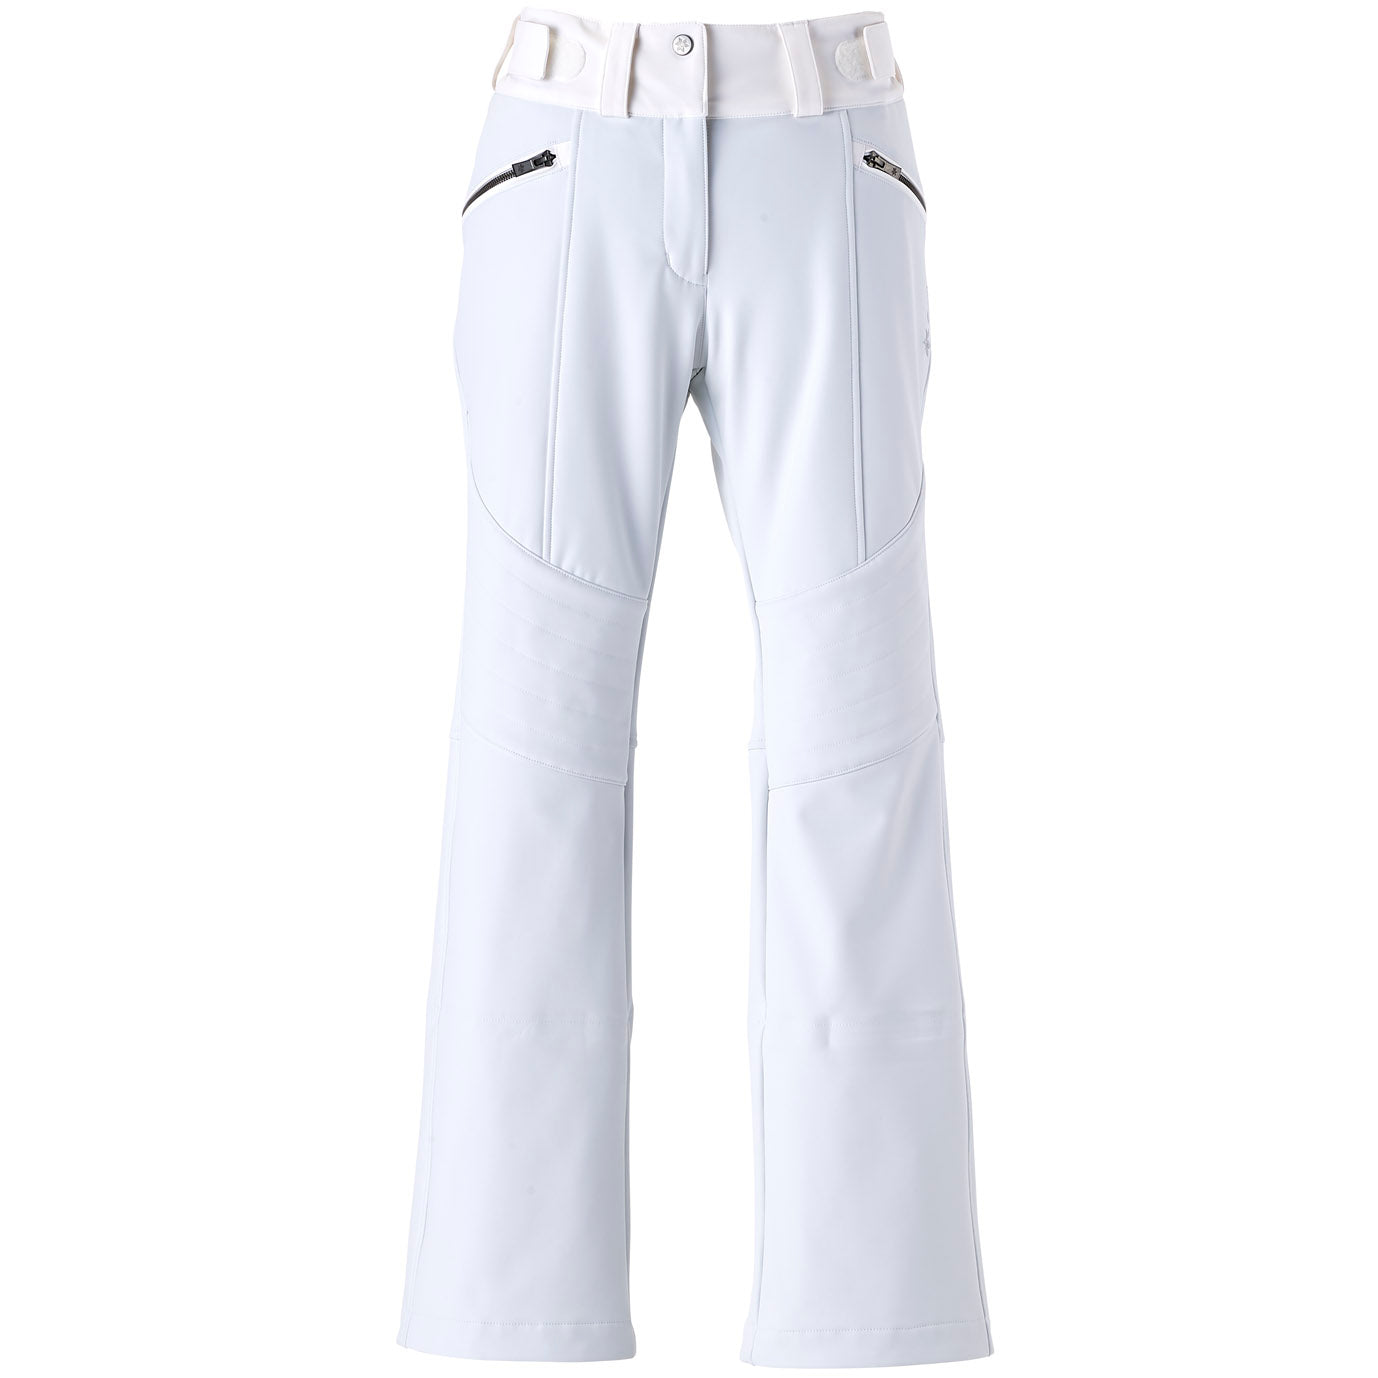 Albireo Bonding Pants